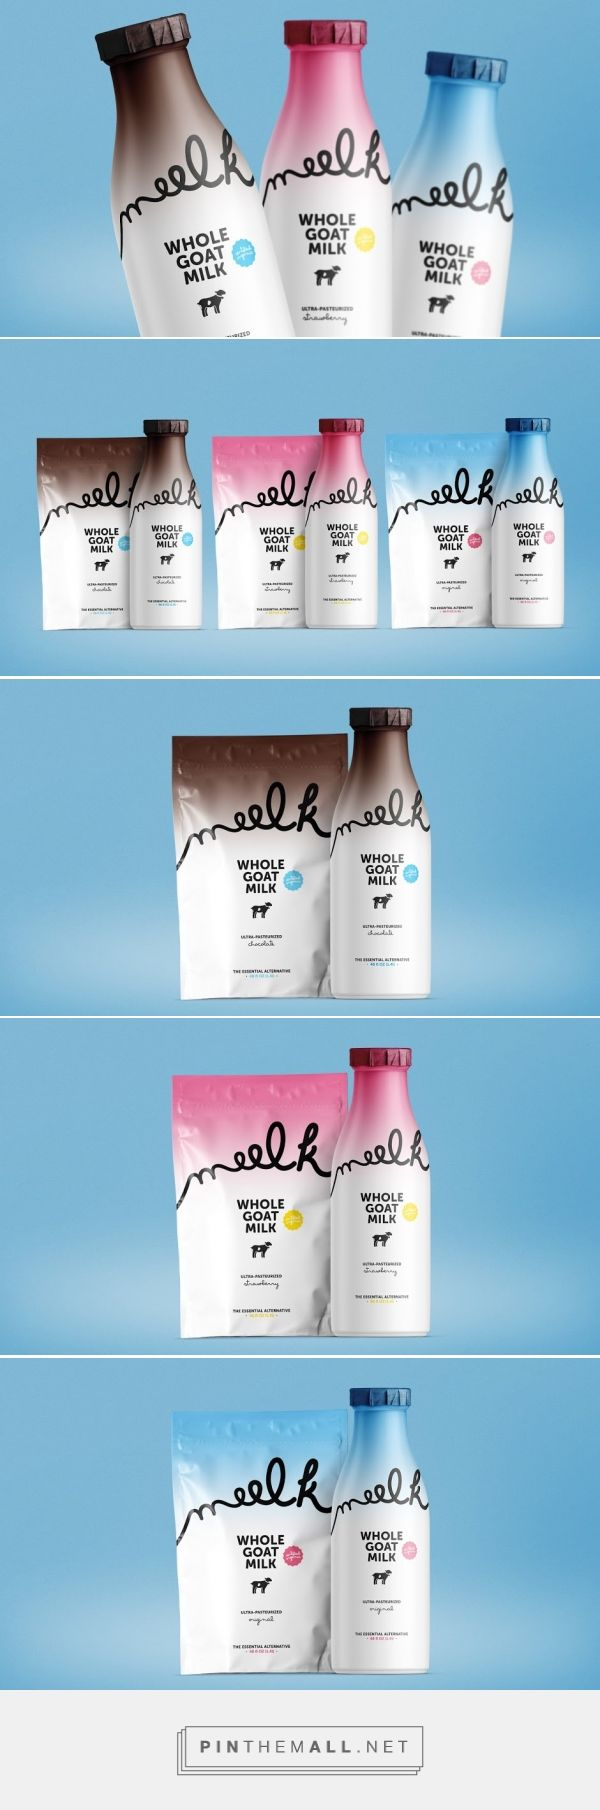 Meelk - Whole Goat Milk Concept packaging design by Rodrigo Chiaparini & Mari Silva (Brazil) - http://www.packagingoftheworld.com/2016/06/meelk-whole-goat-milk-concept.html